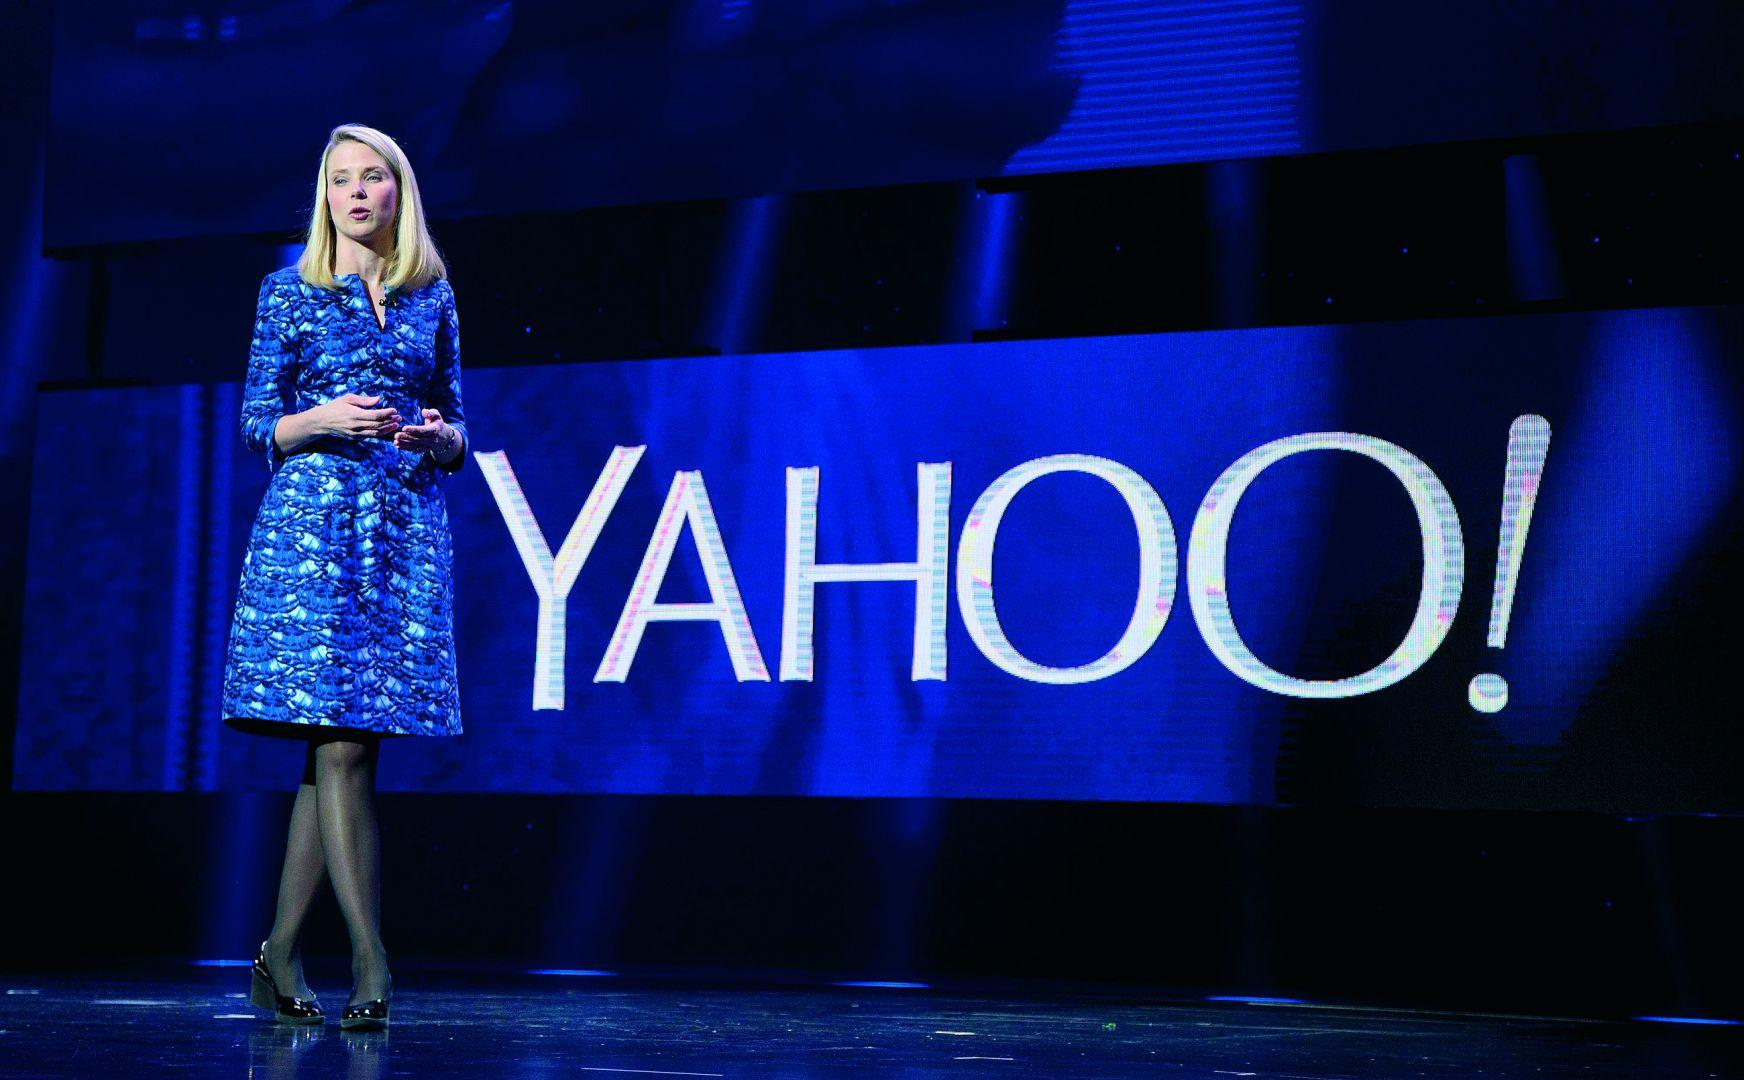 Yahoo's Search Share Has Just Dropped Below 10% http://t.co/jrZX9V7Ng2 tgs #yahoo #media #marketing via @viralblog http://t.co/kPpOEqZYbd